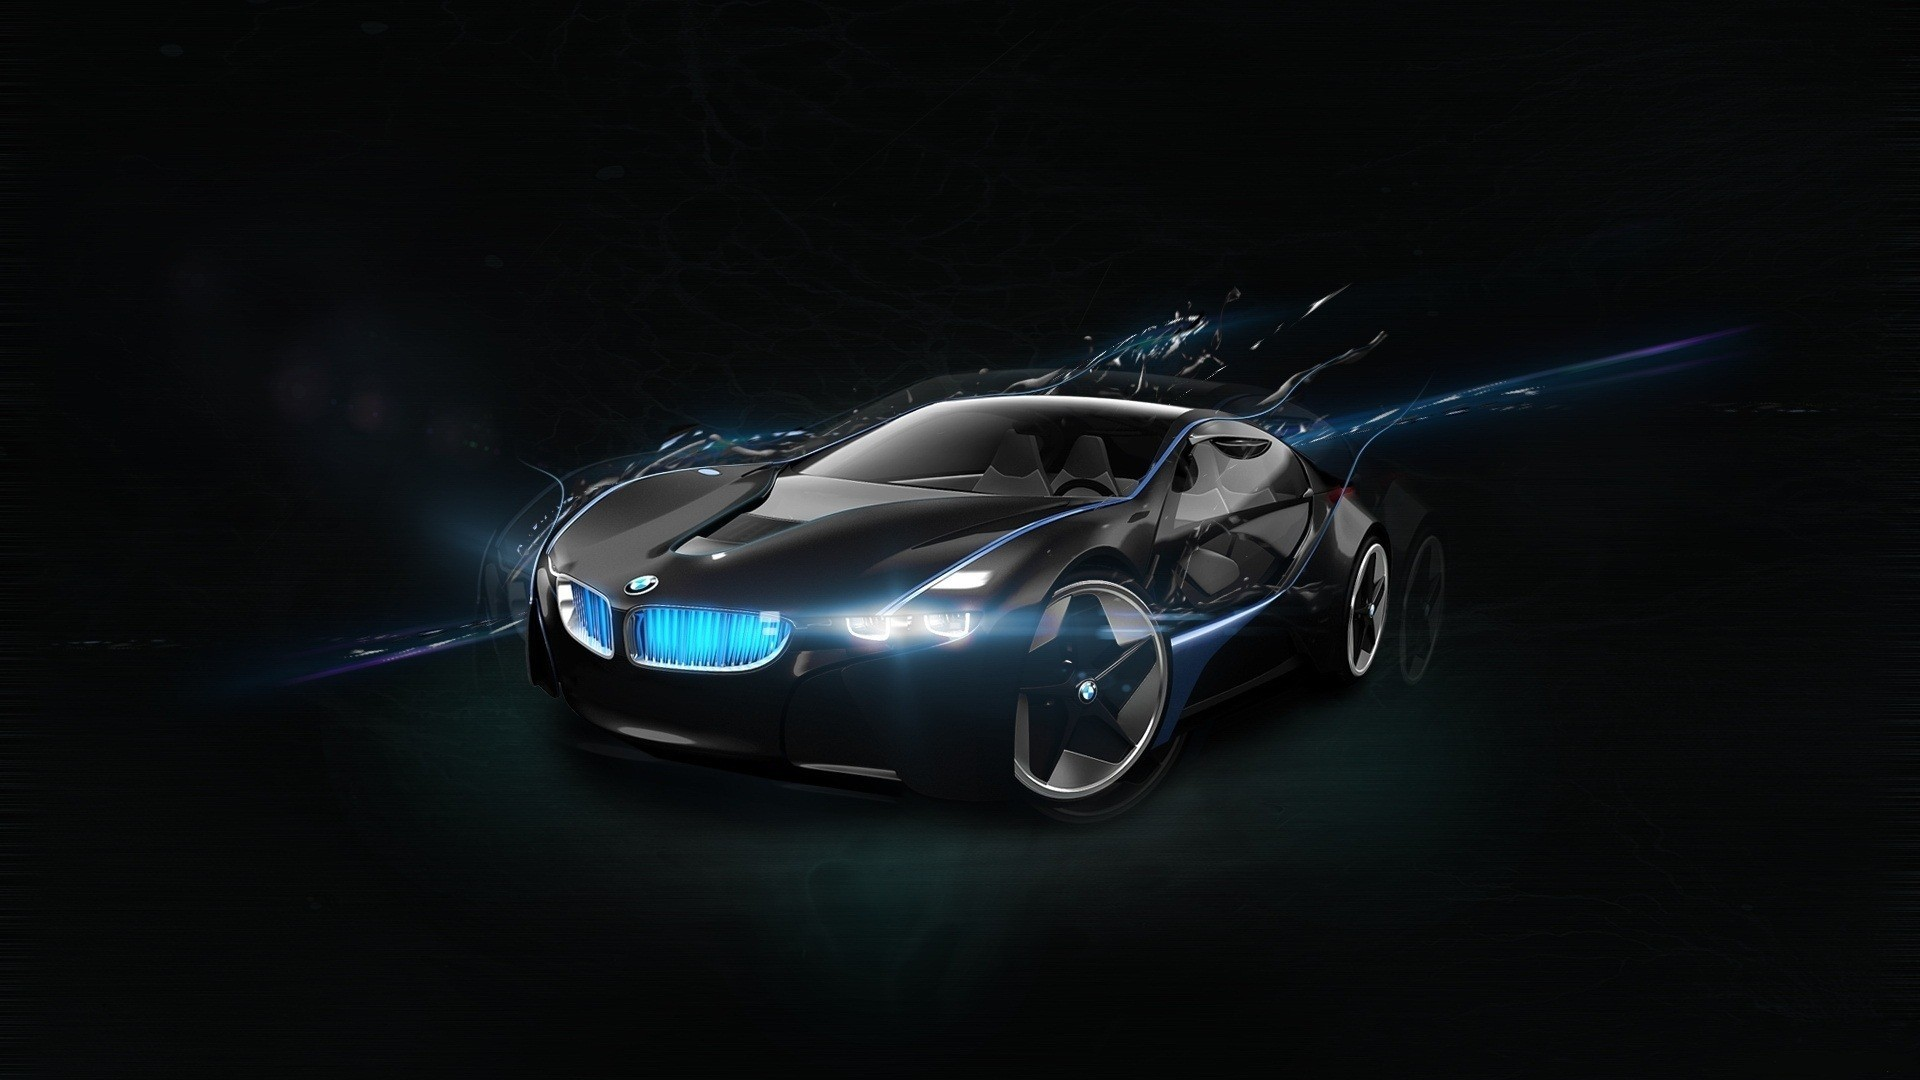 BMW Vision Super Car 222.73 Kb